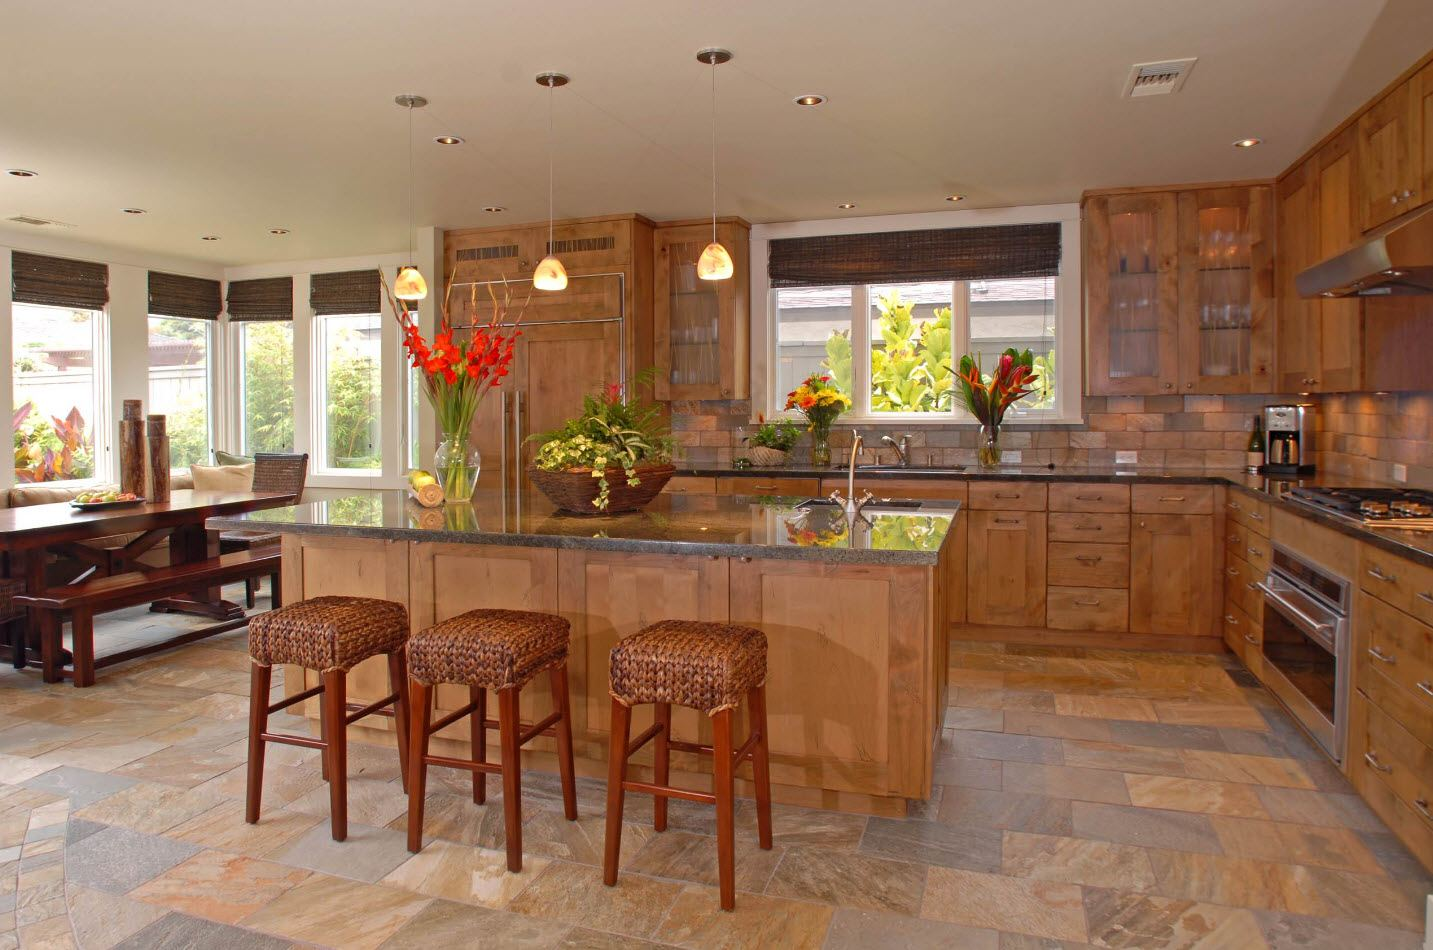 170 Square Feet Kitchen Design Ideas with Photos. Classic furniture set and island with mrable imitating countertop